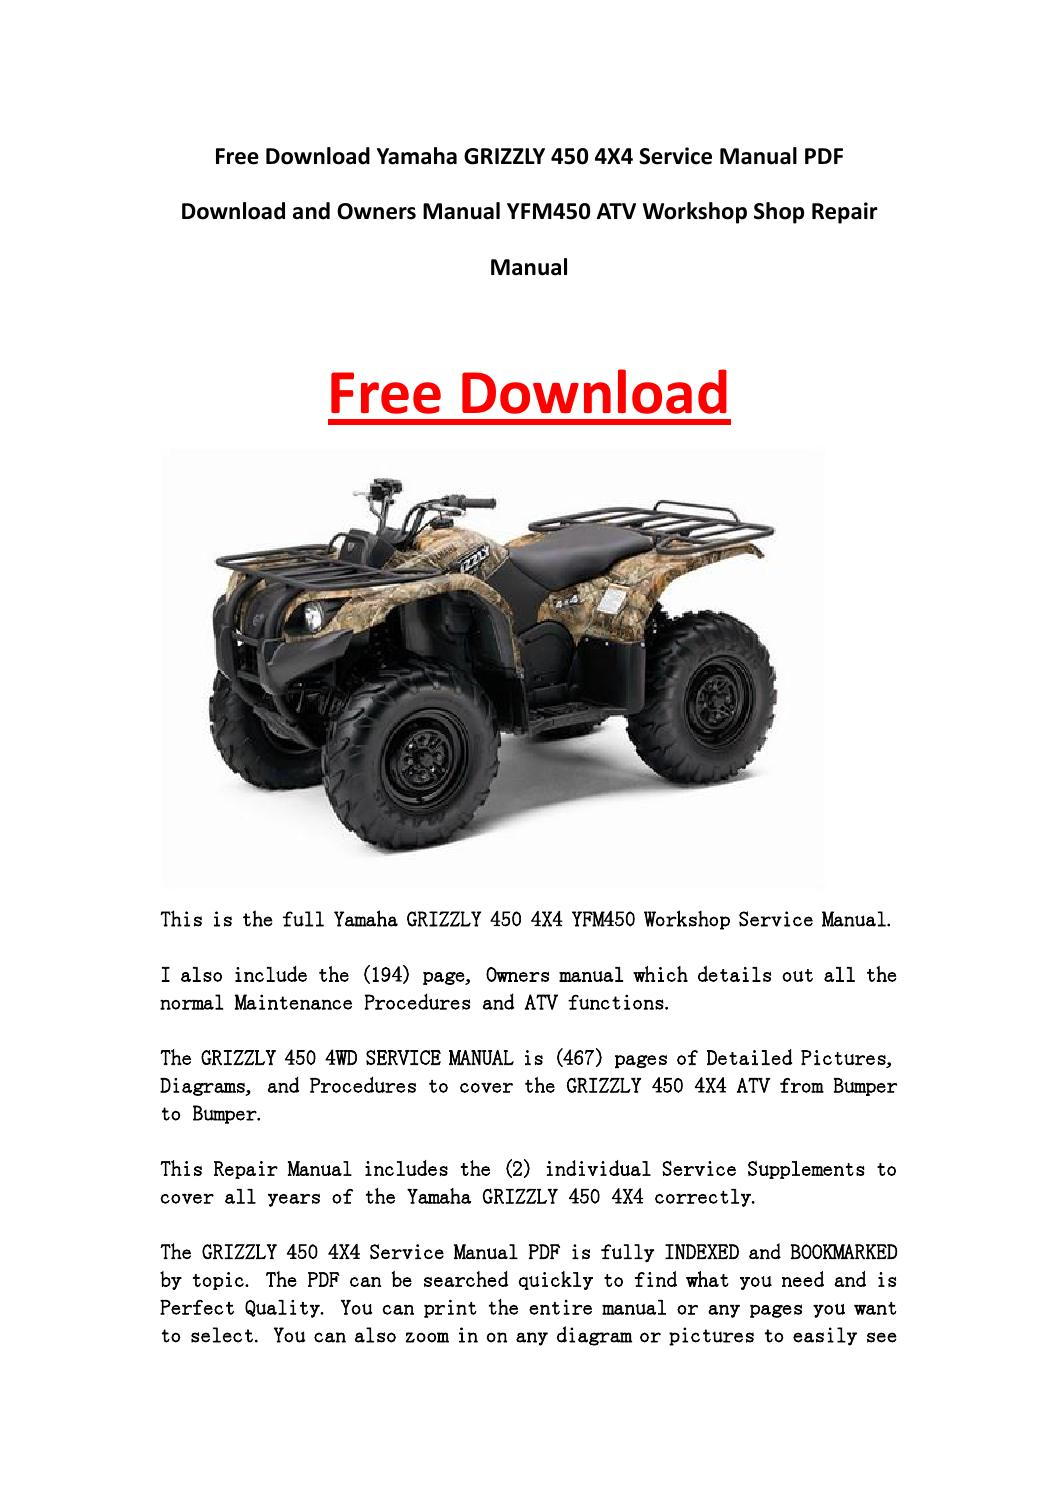 Yamaha RX-V363 User Manual